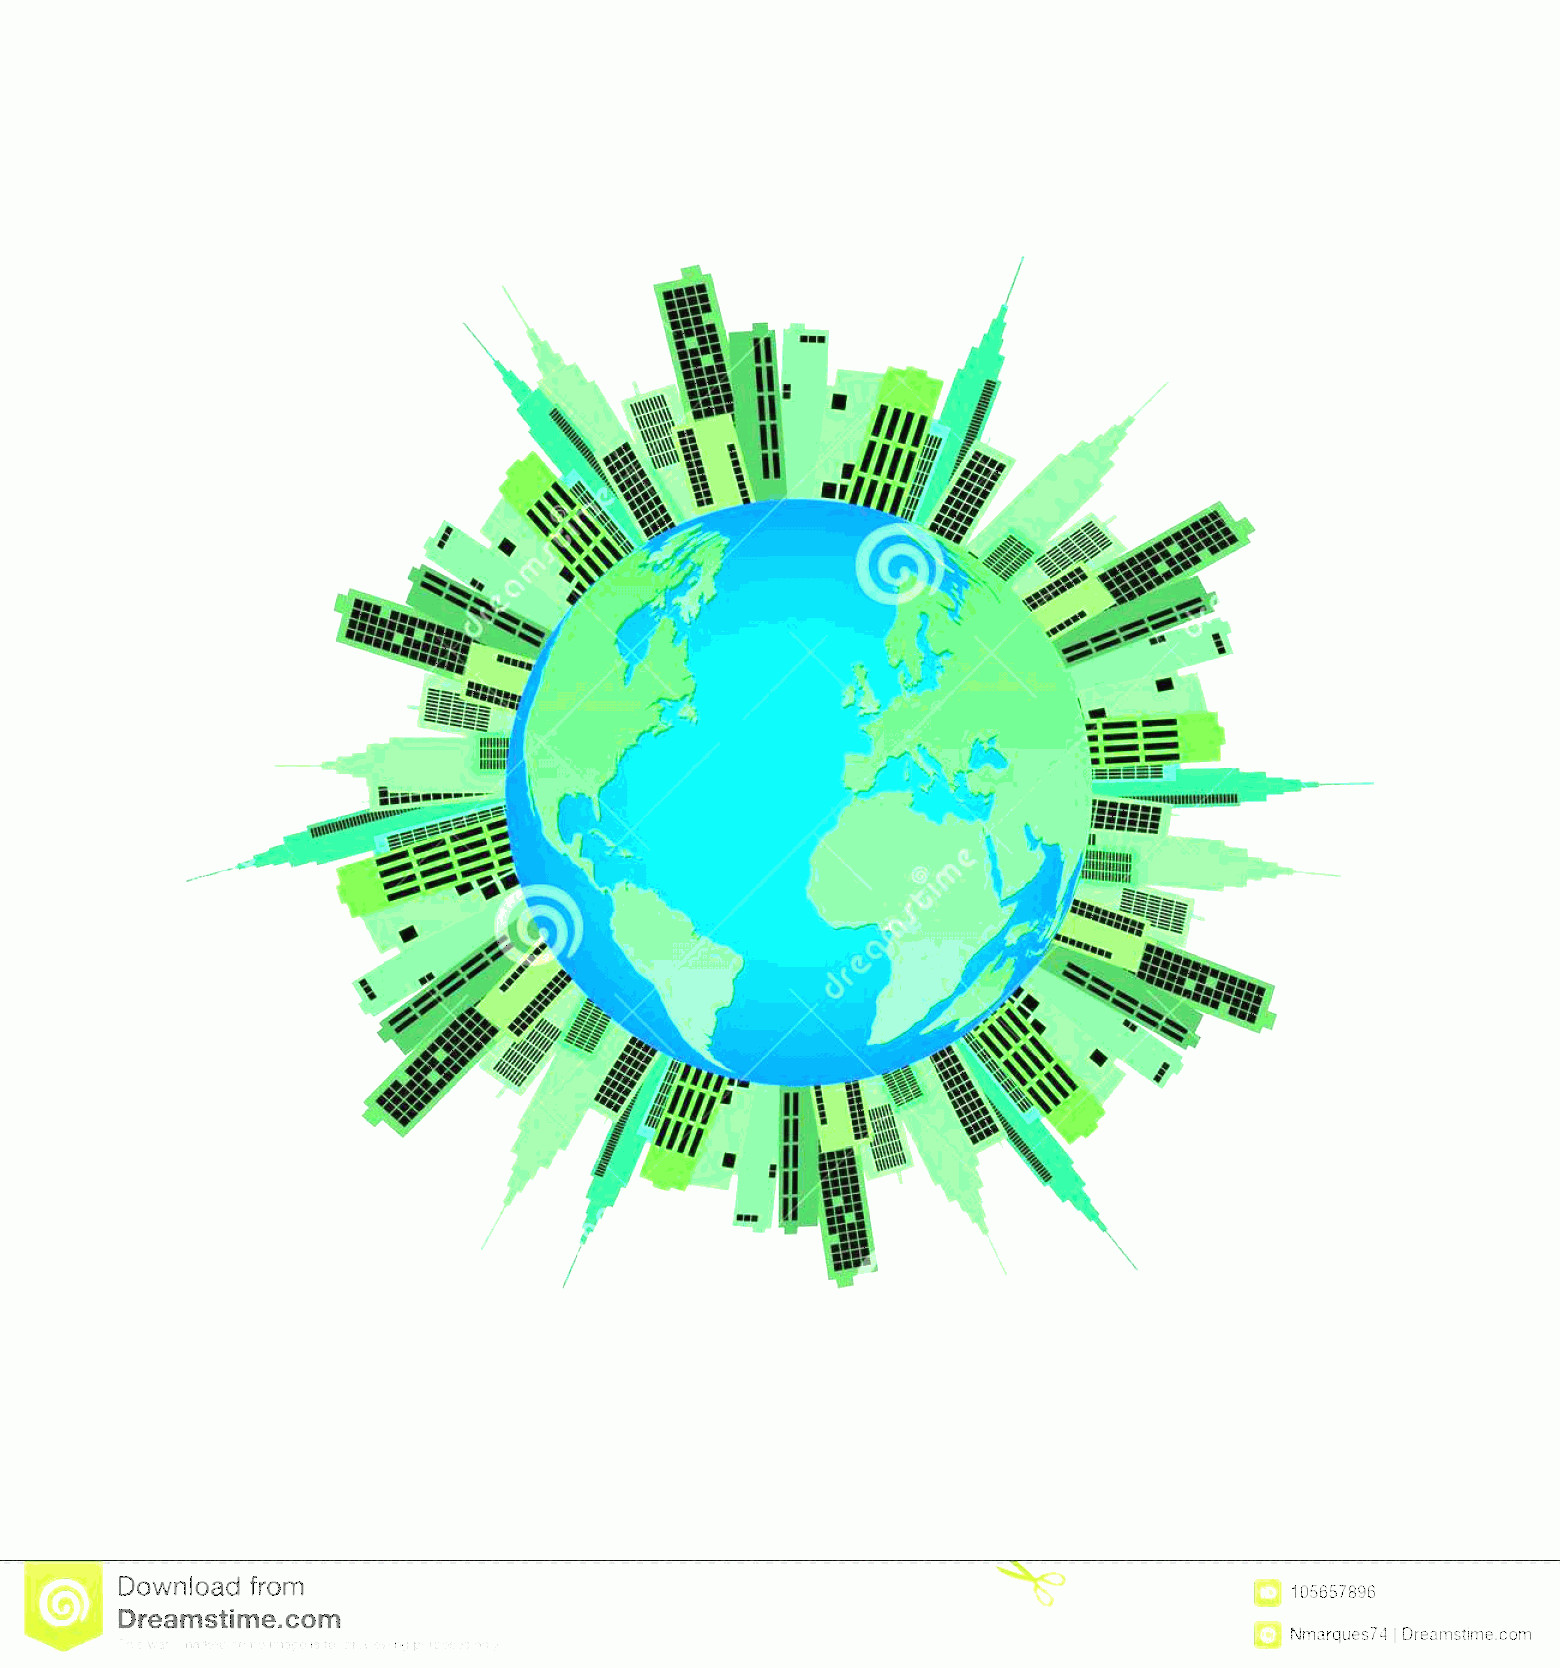 Earth With Buildings Vector: Illustration Earth Green Buildings Isolated White Background Earth Buildings Illustration Image